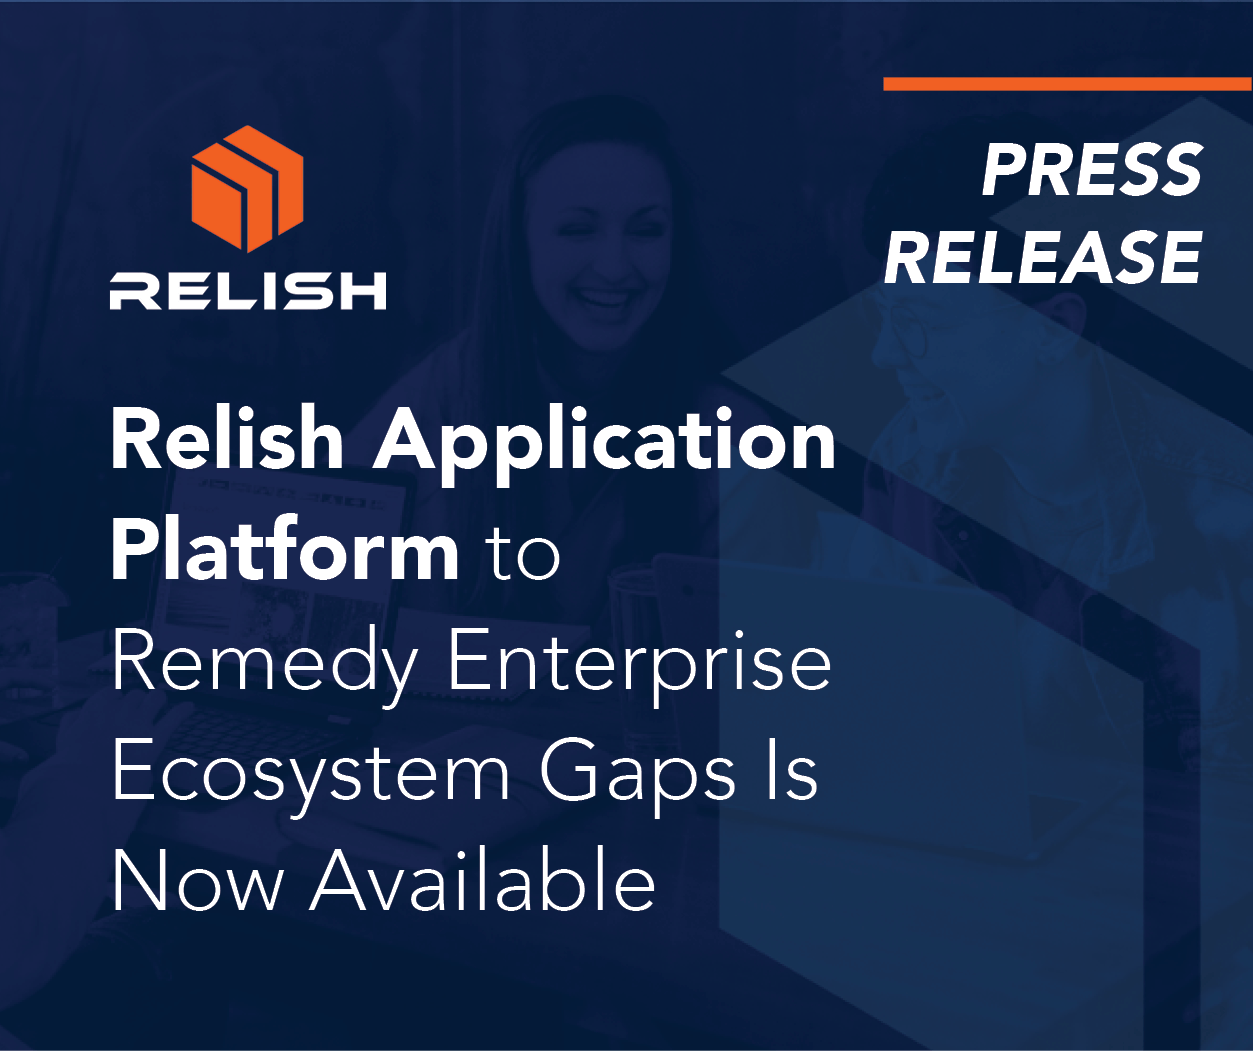 The Relish Application Platform to Remedy Enterprise Ecosystem Gaps Is Now Available